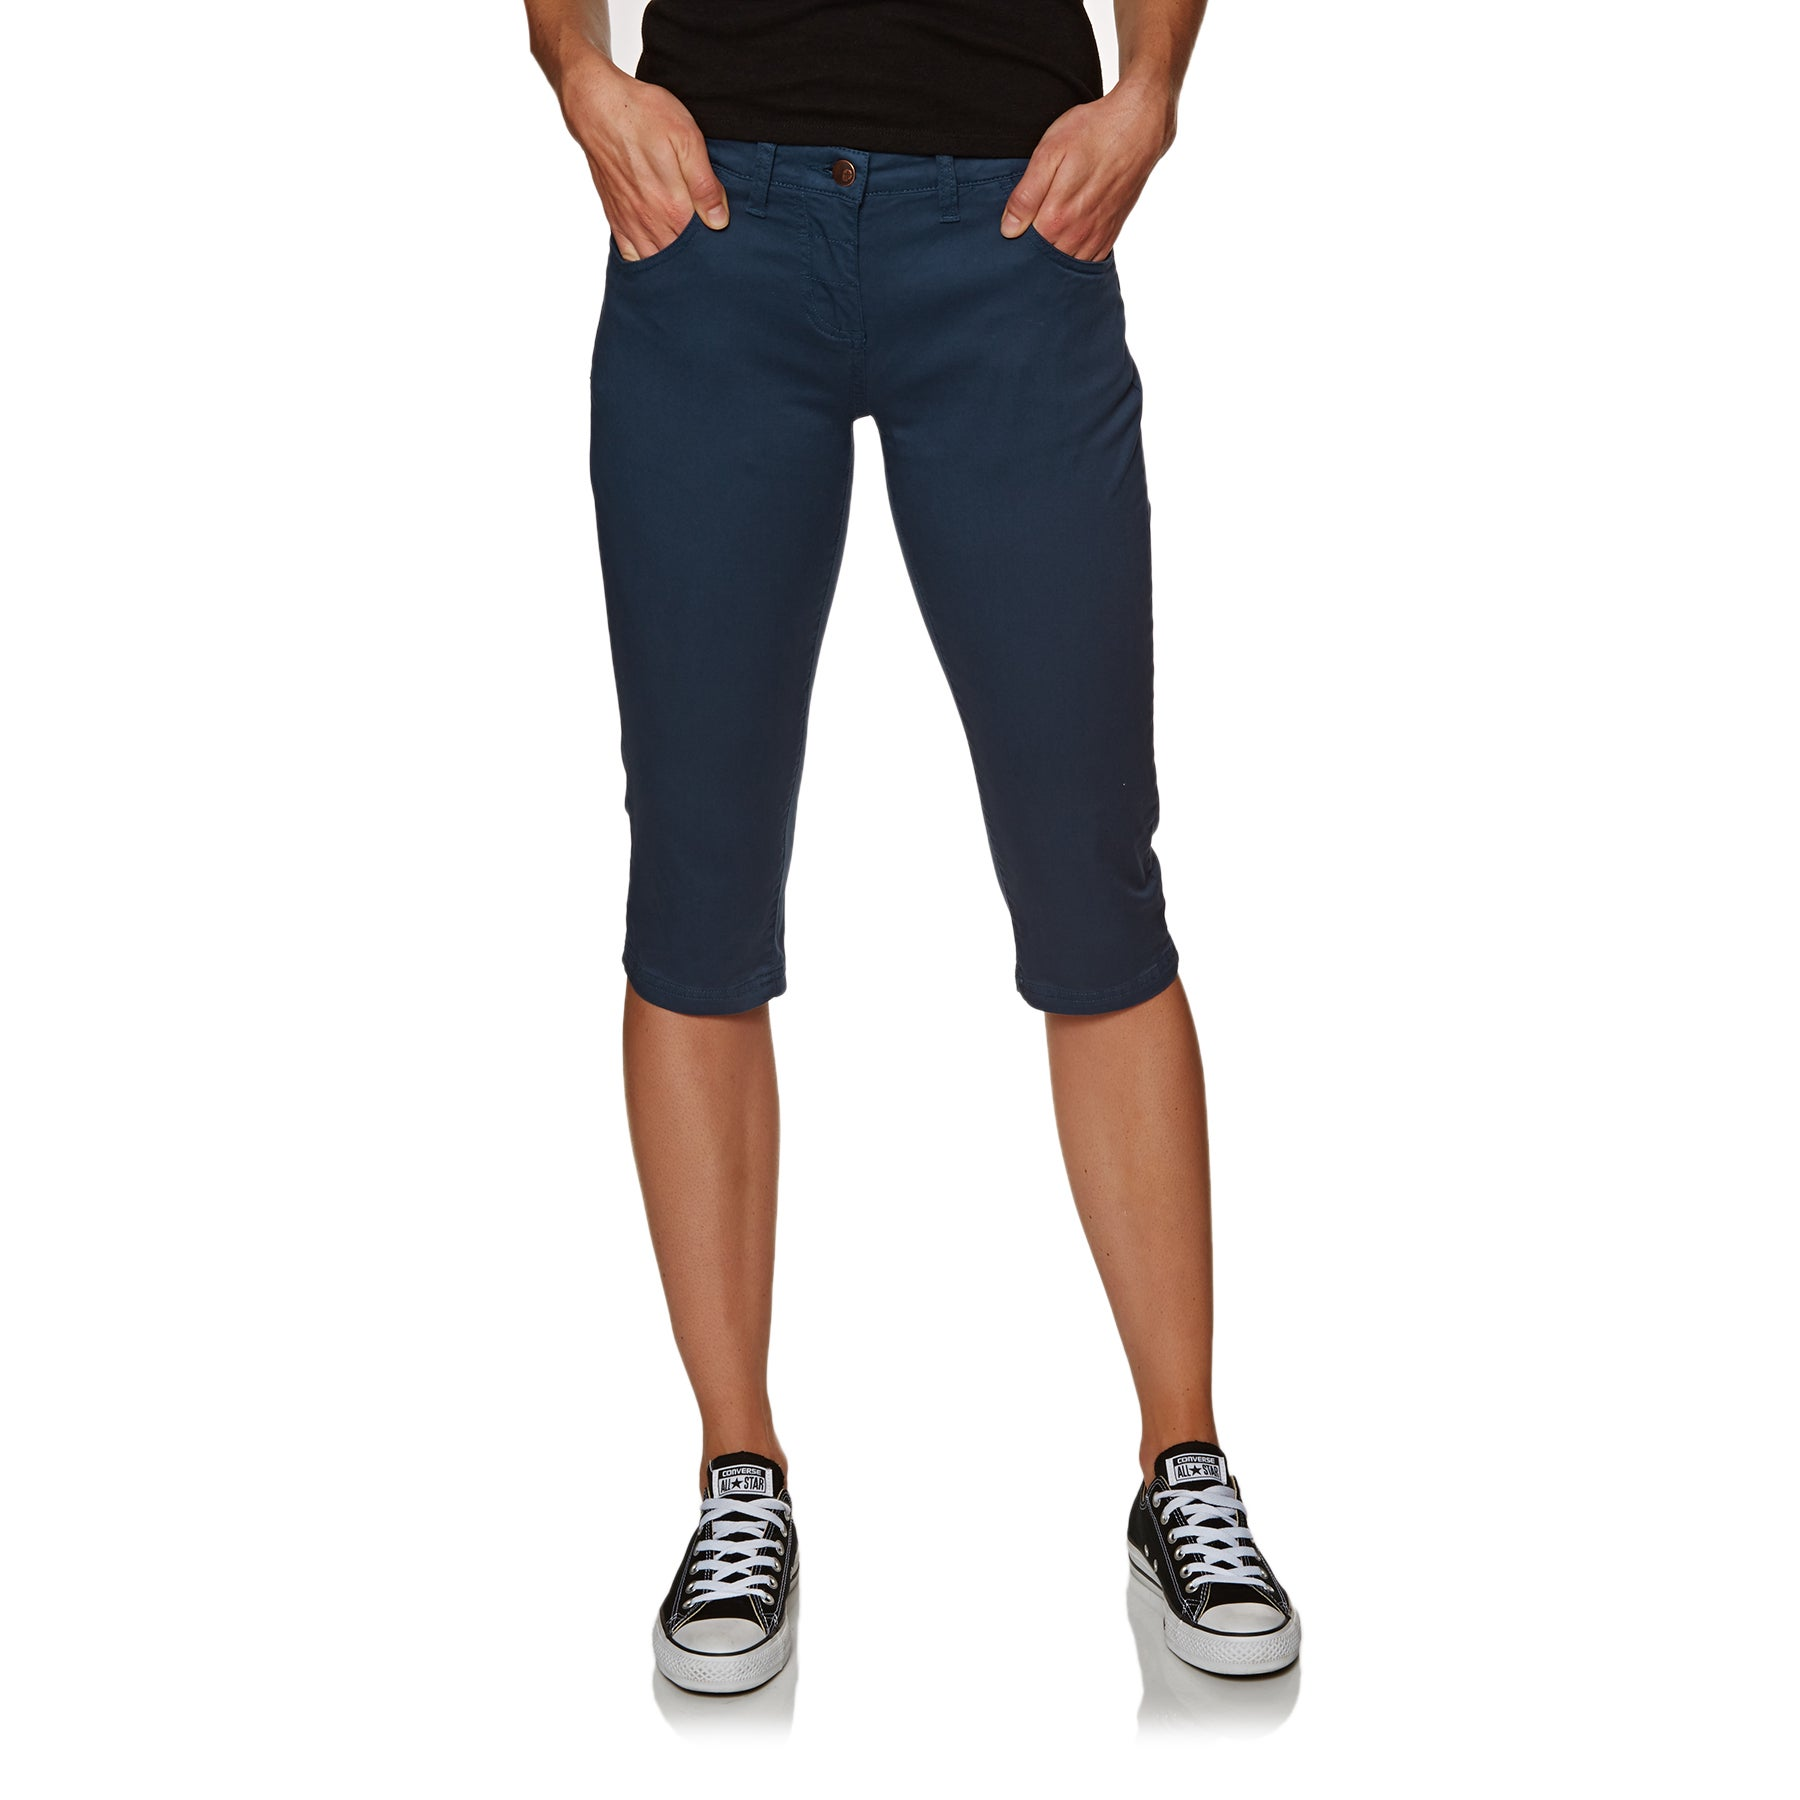 Protest Attractive 3 Quarter Ladies Chino Pant